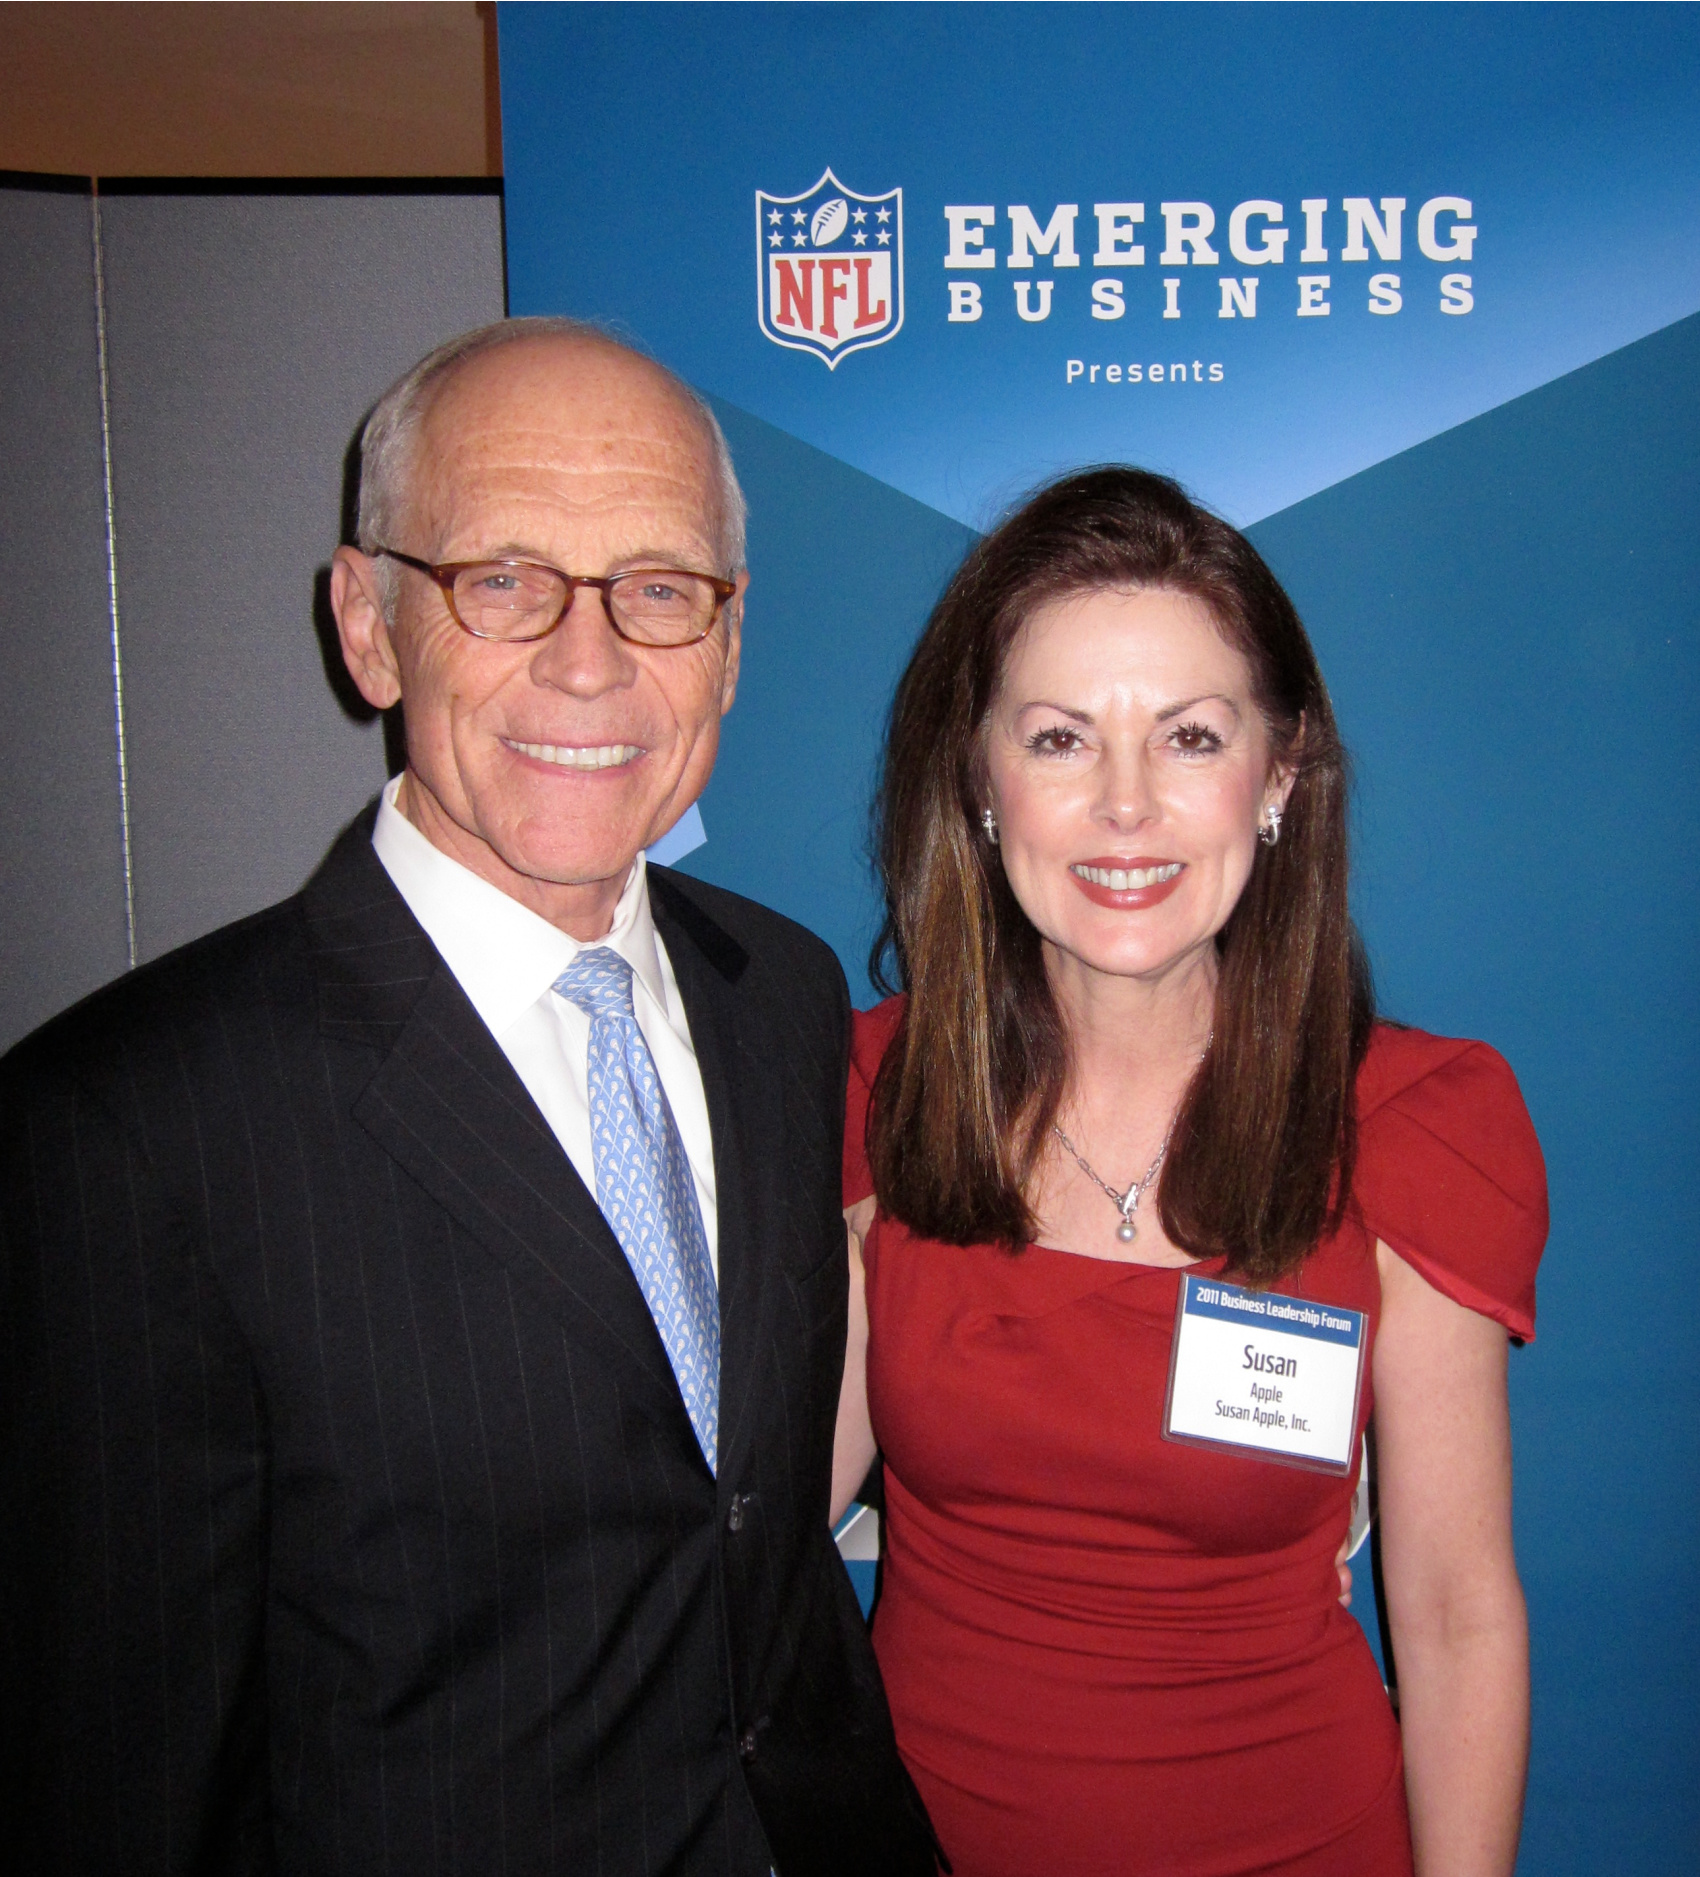 NFL Emerging Business Program